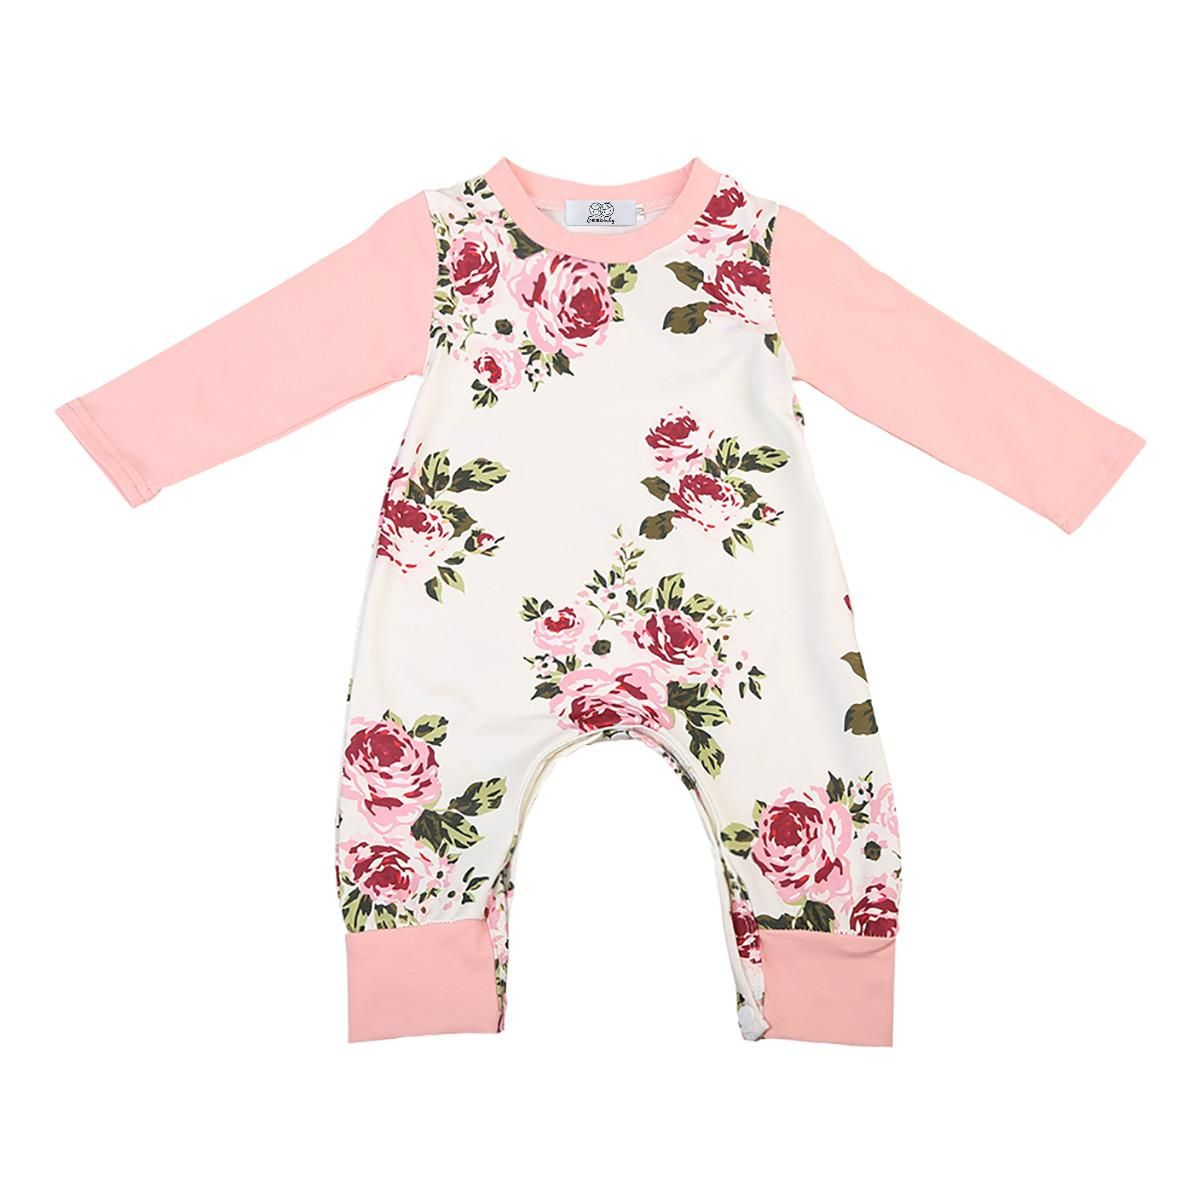 10c60c34a9e6 Baby Girl Romper 2017 Autumn Long Sleeve Cute Girl Newborn Kids Baby Girls  Floral Romper Jumpsuit Clothes Outfits AU. Yesterday s price  US  5.16  (4.51 EUR) ...